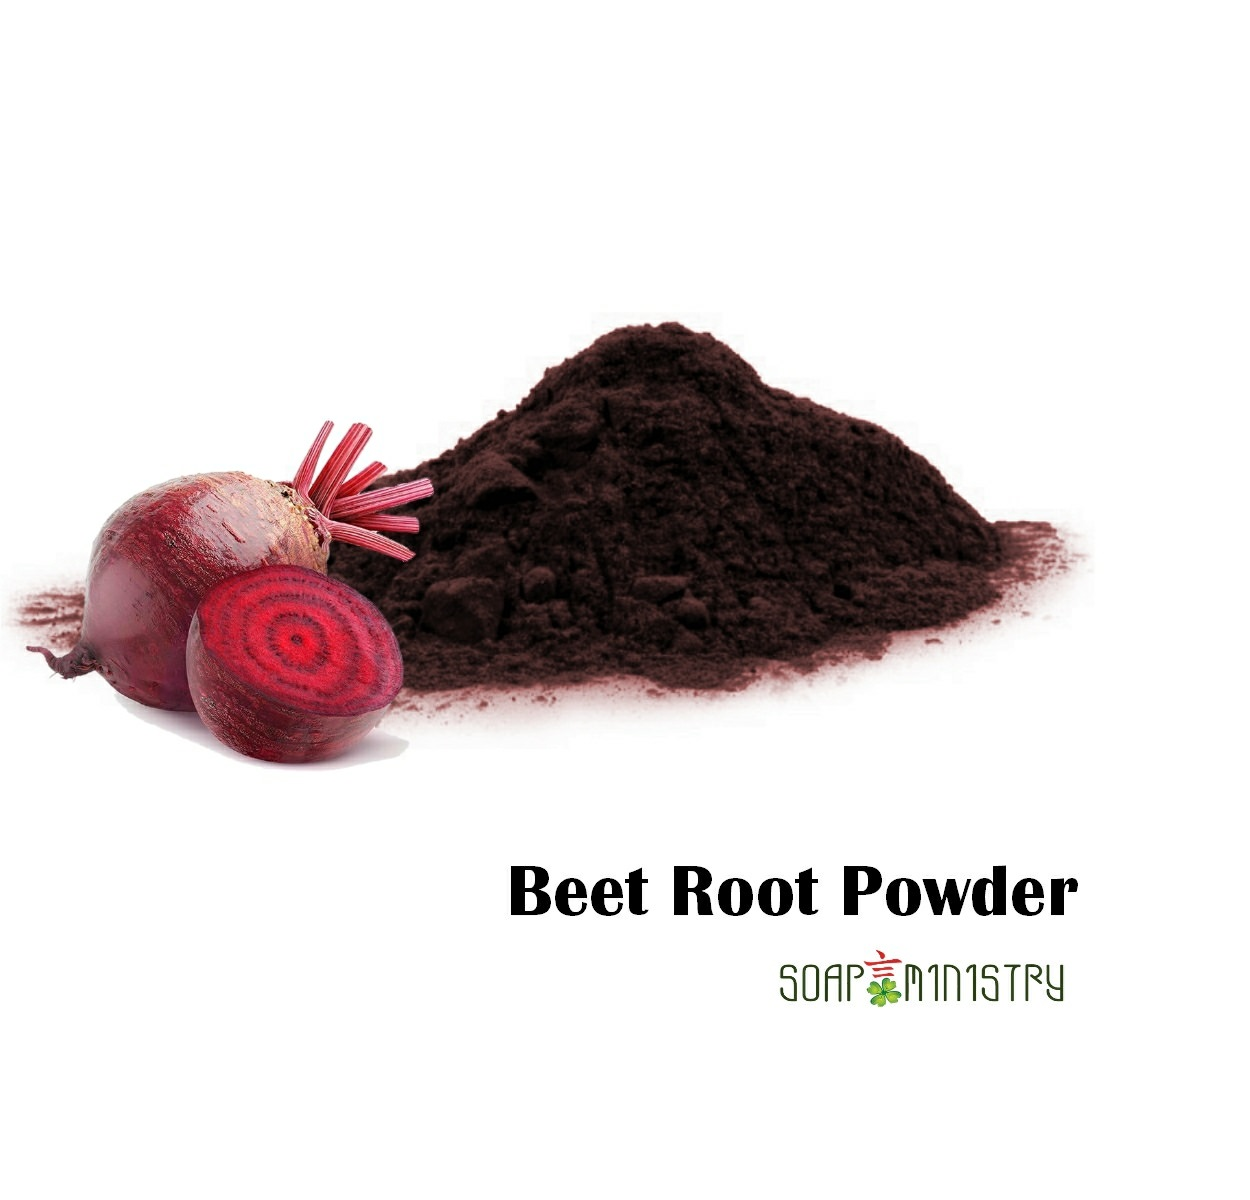 Beet Root Powder 250g